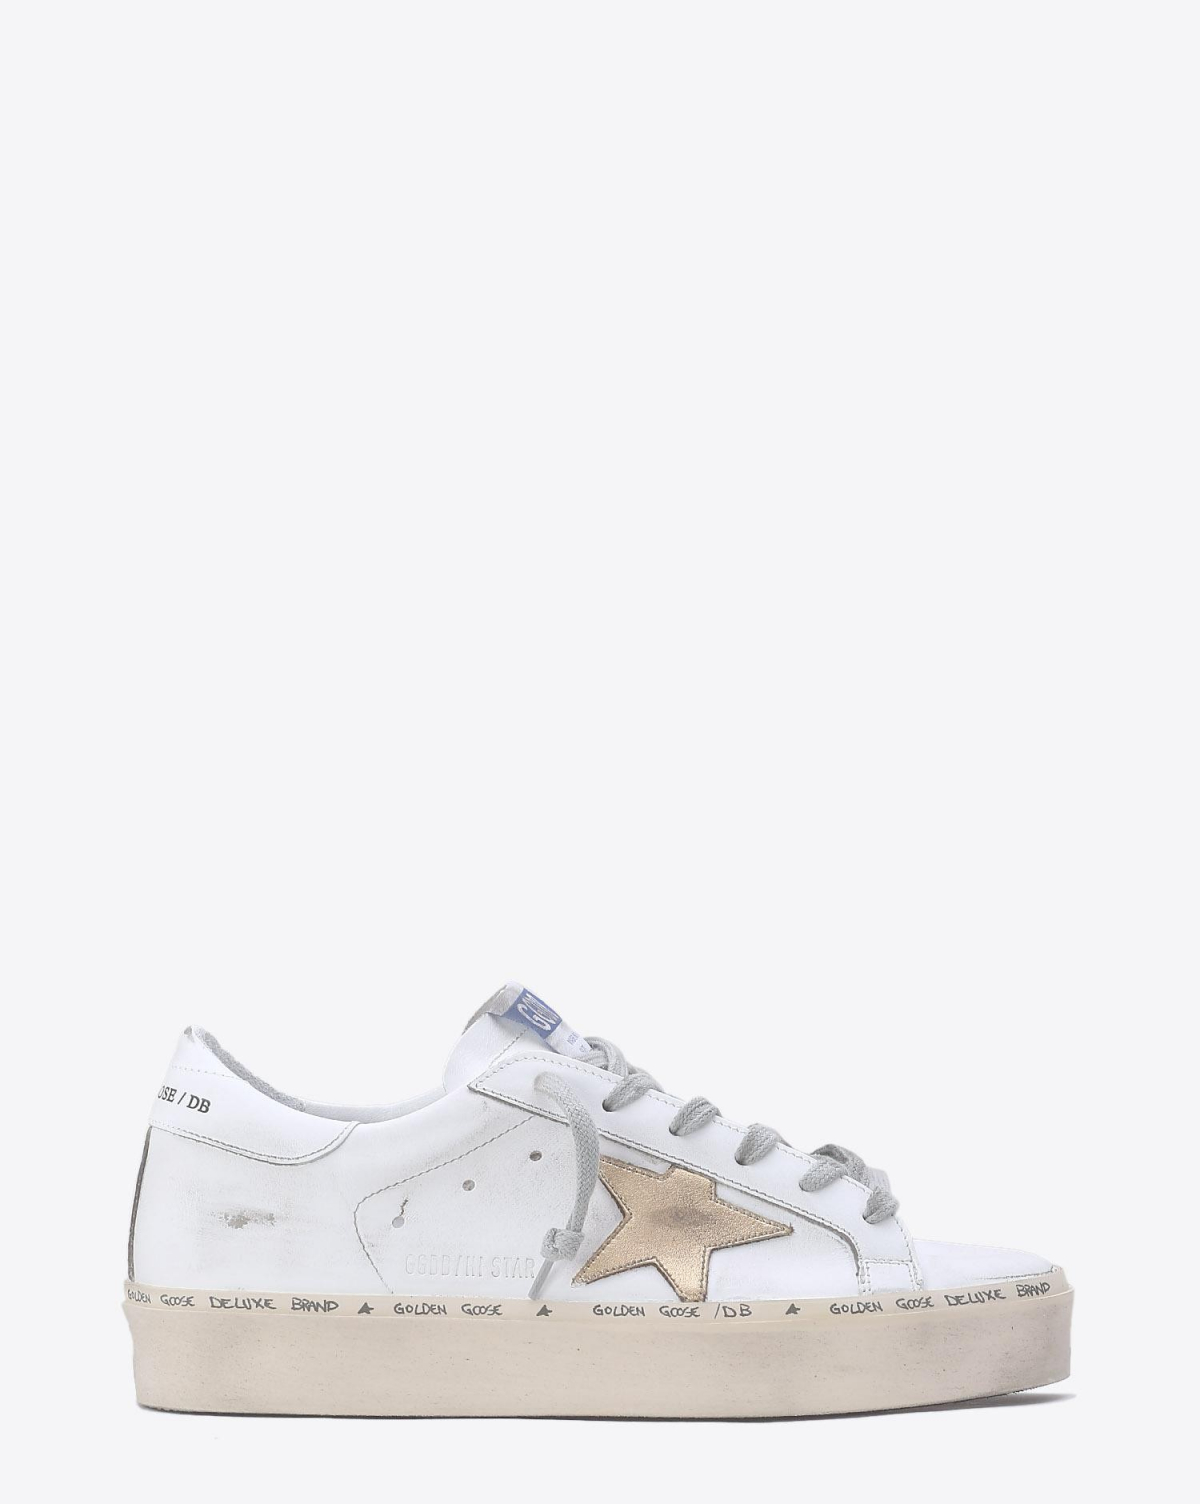 Golden Goose Woman Collection Sneakers Hi Star - White / Gold Leather Star